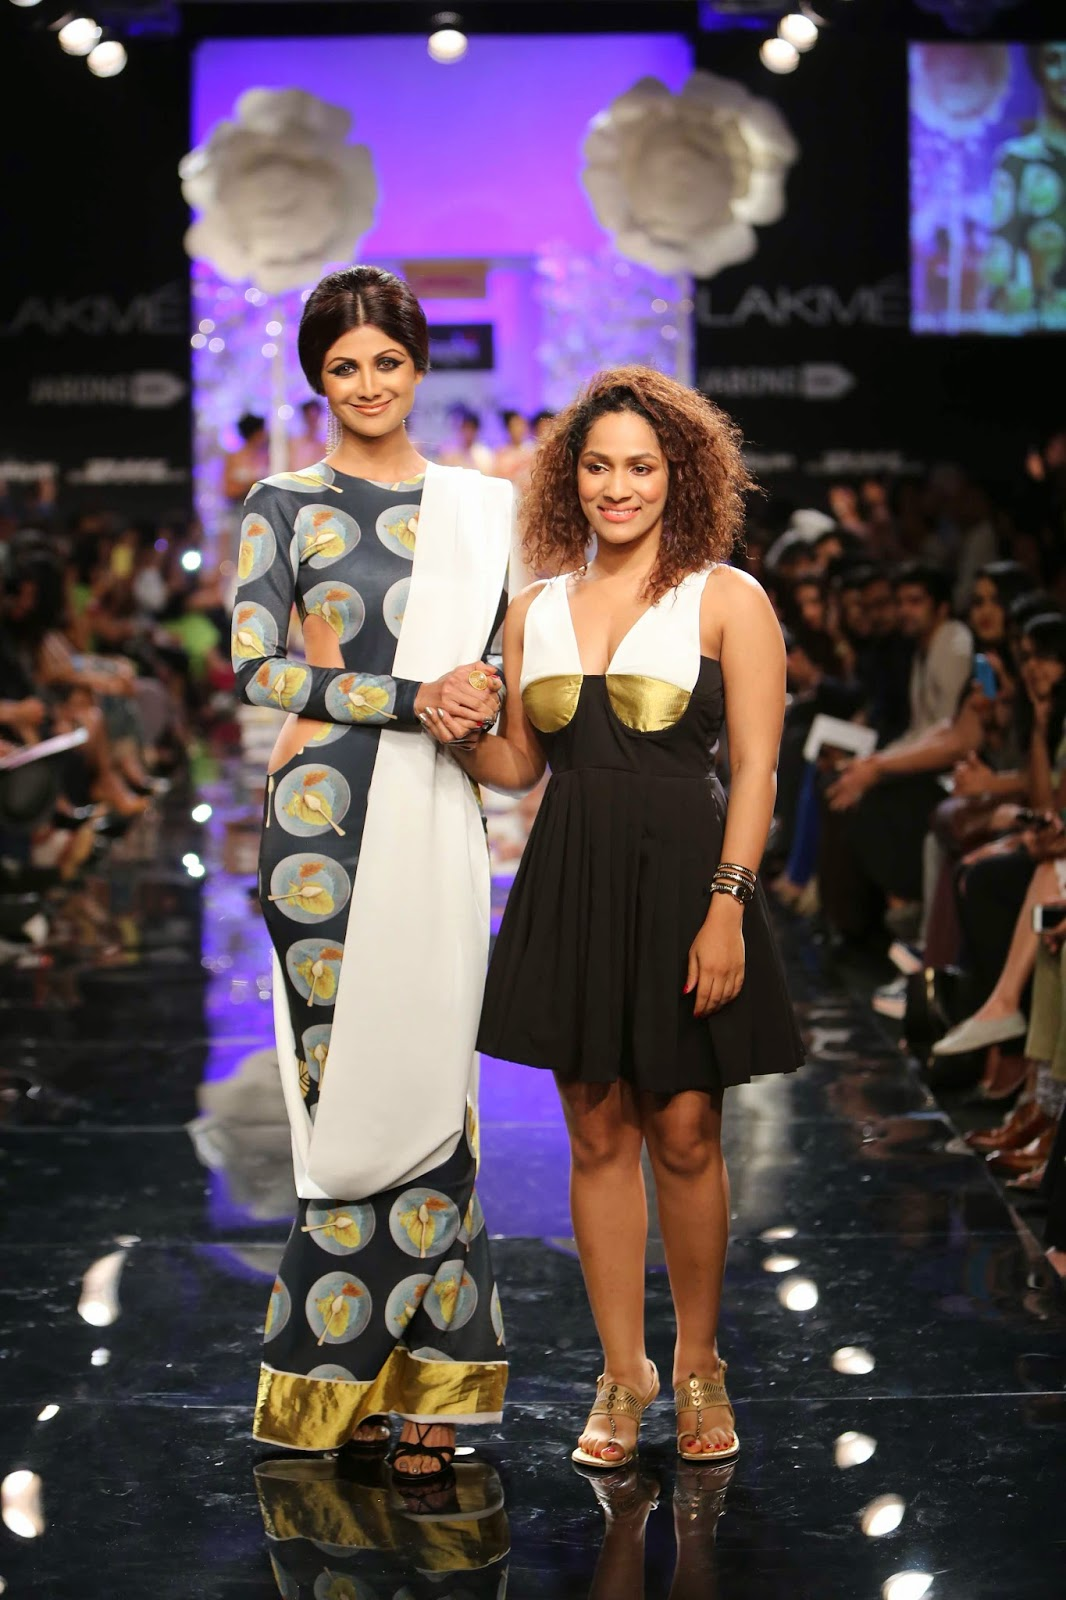 Shilpa Shetty and masaba Gupta....www.aquaintperspective,blogspot.com